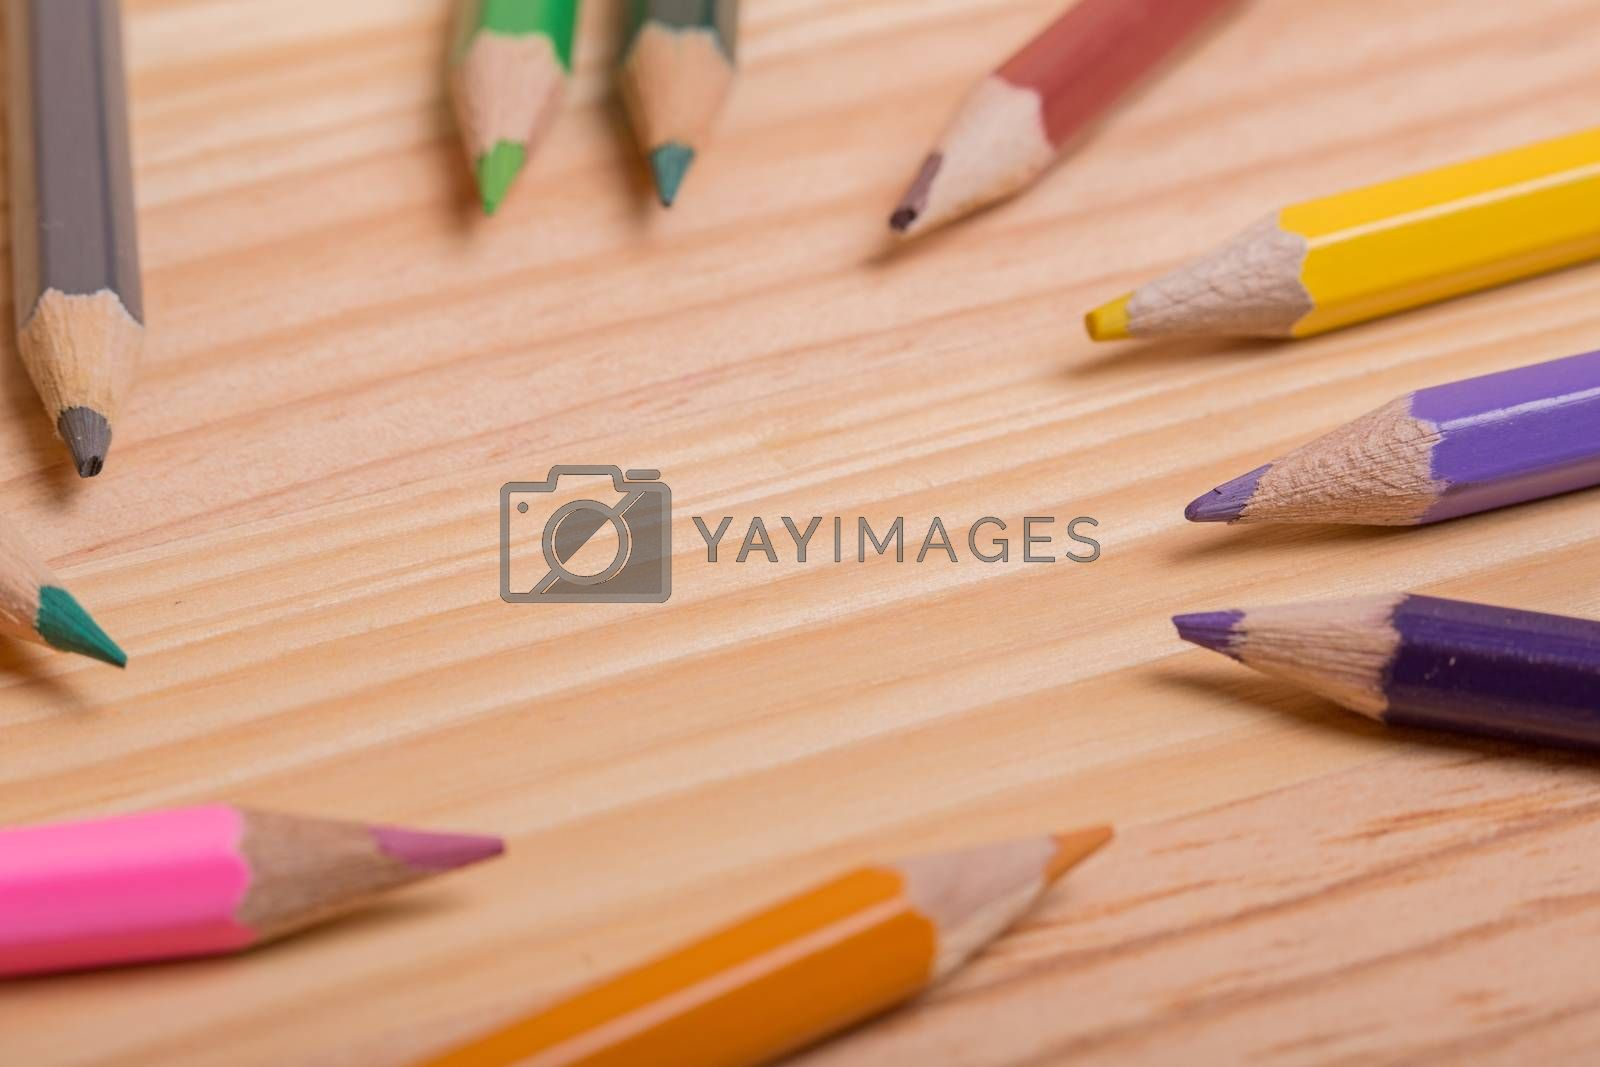 Royalty free image of colorful pencils by zittto